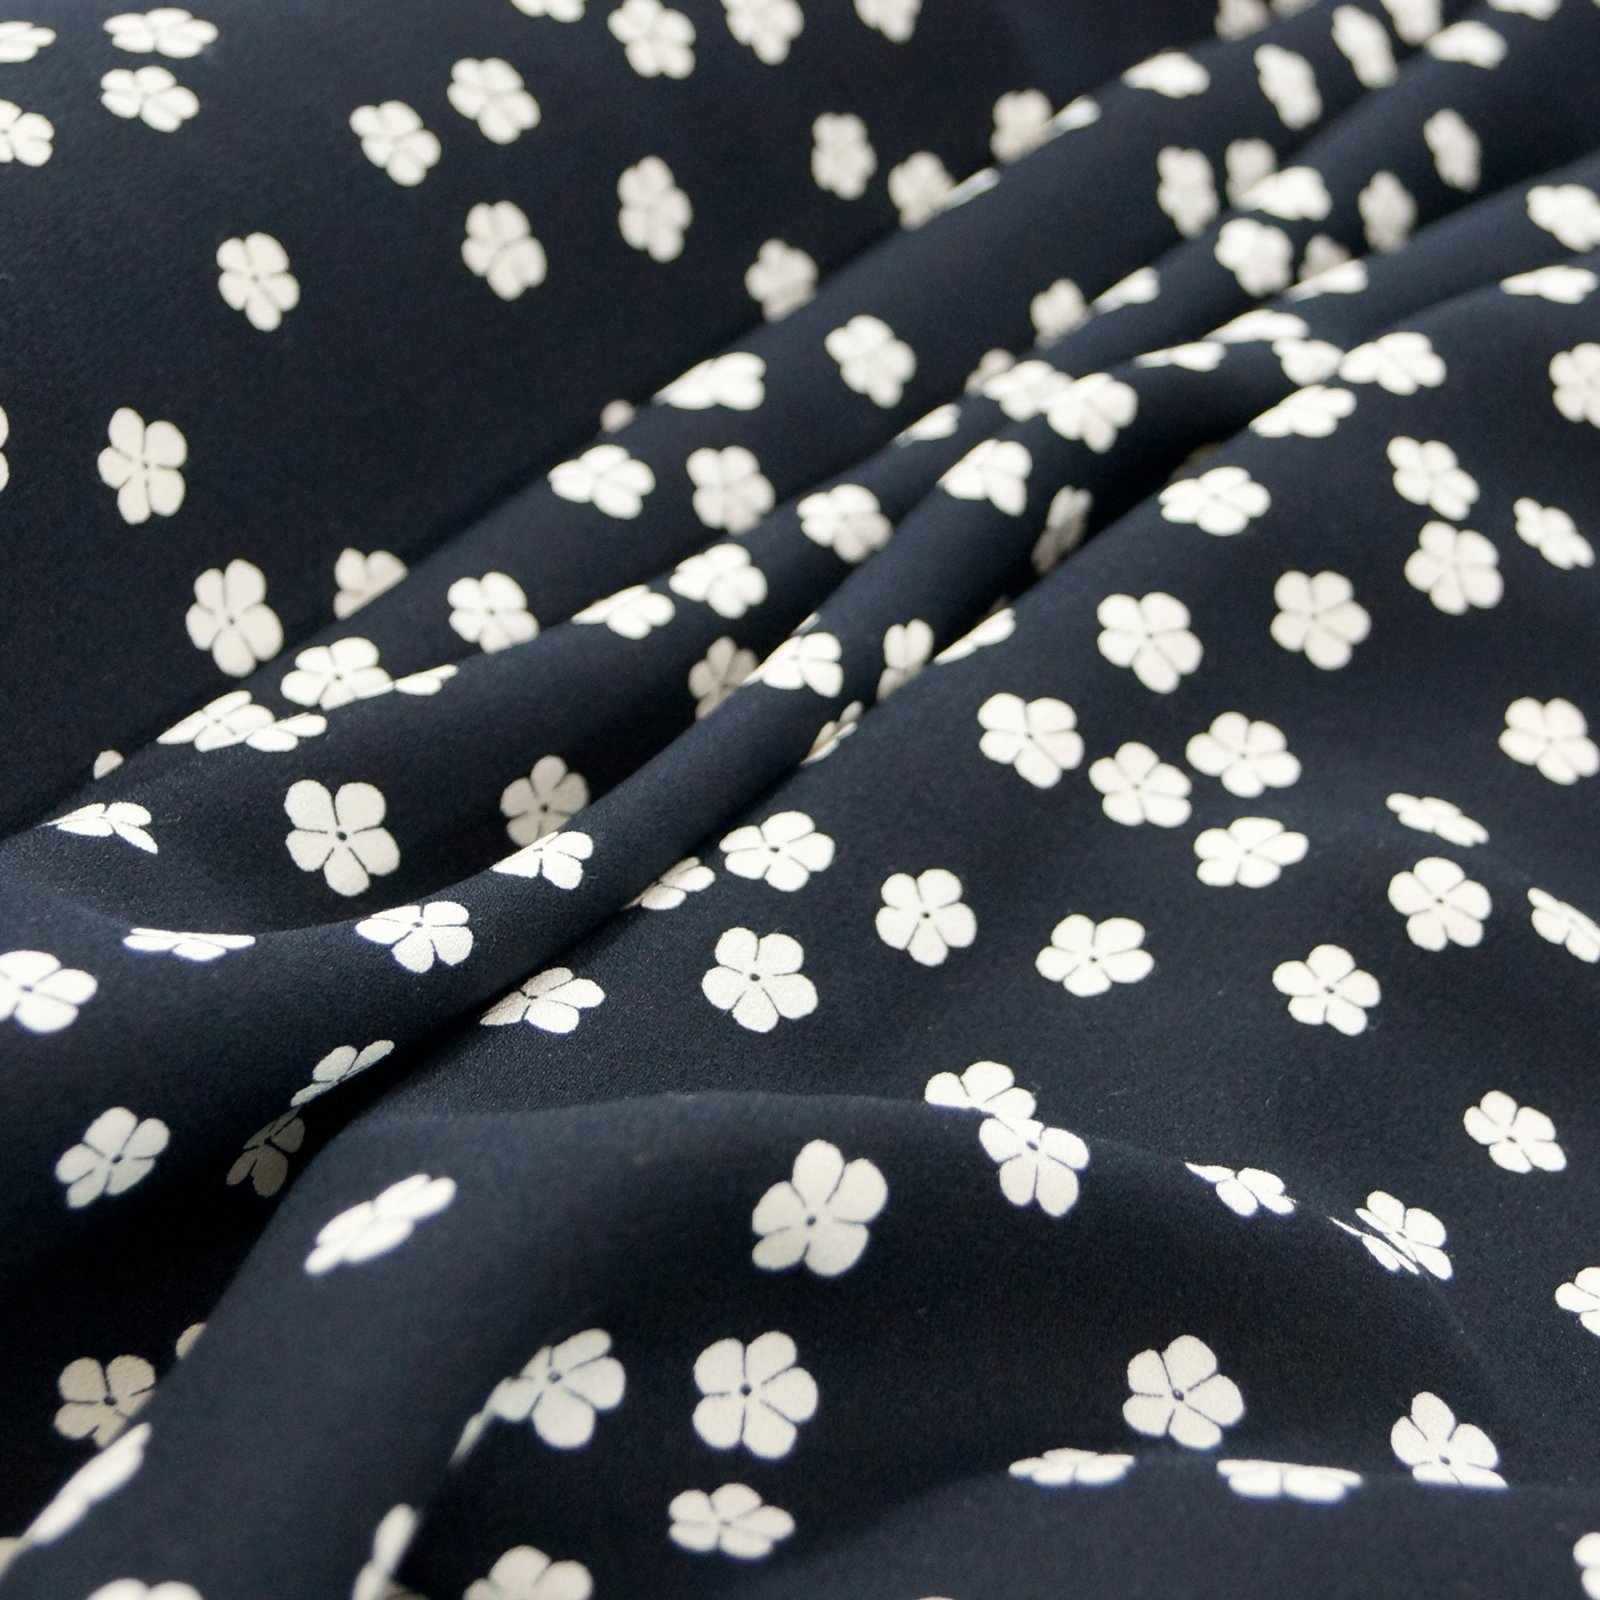 Rayon Crepe - Black with Small Cream Flowers